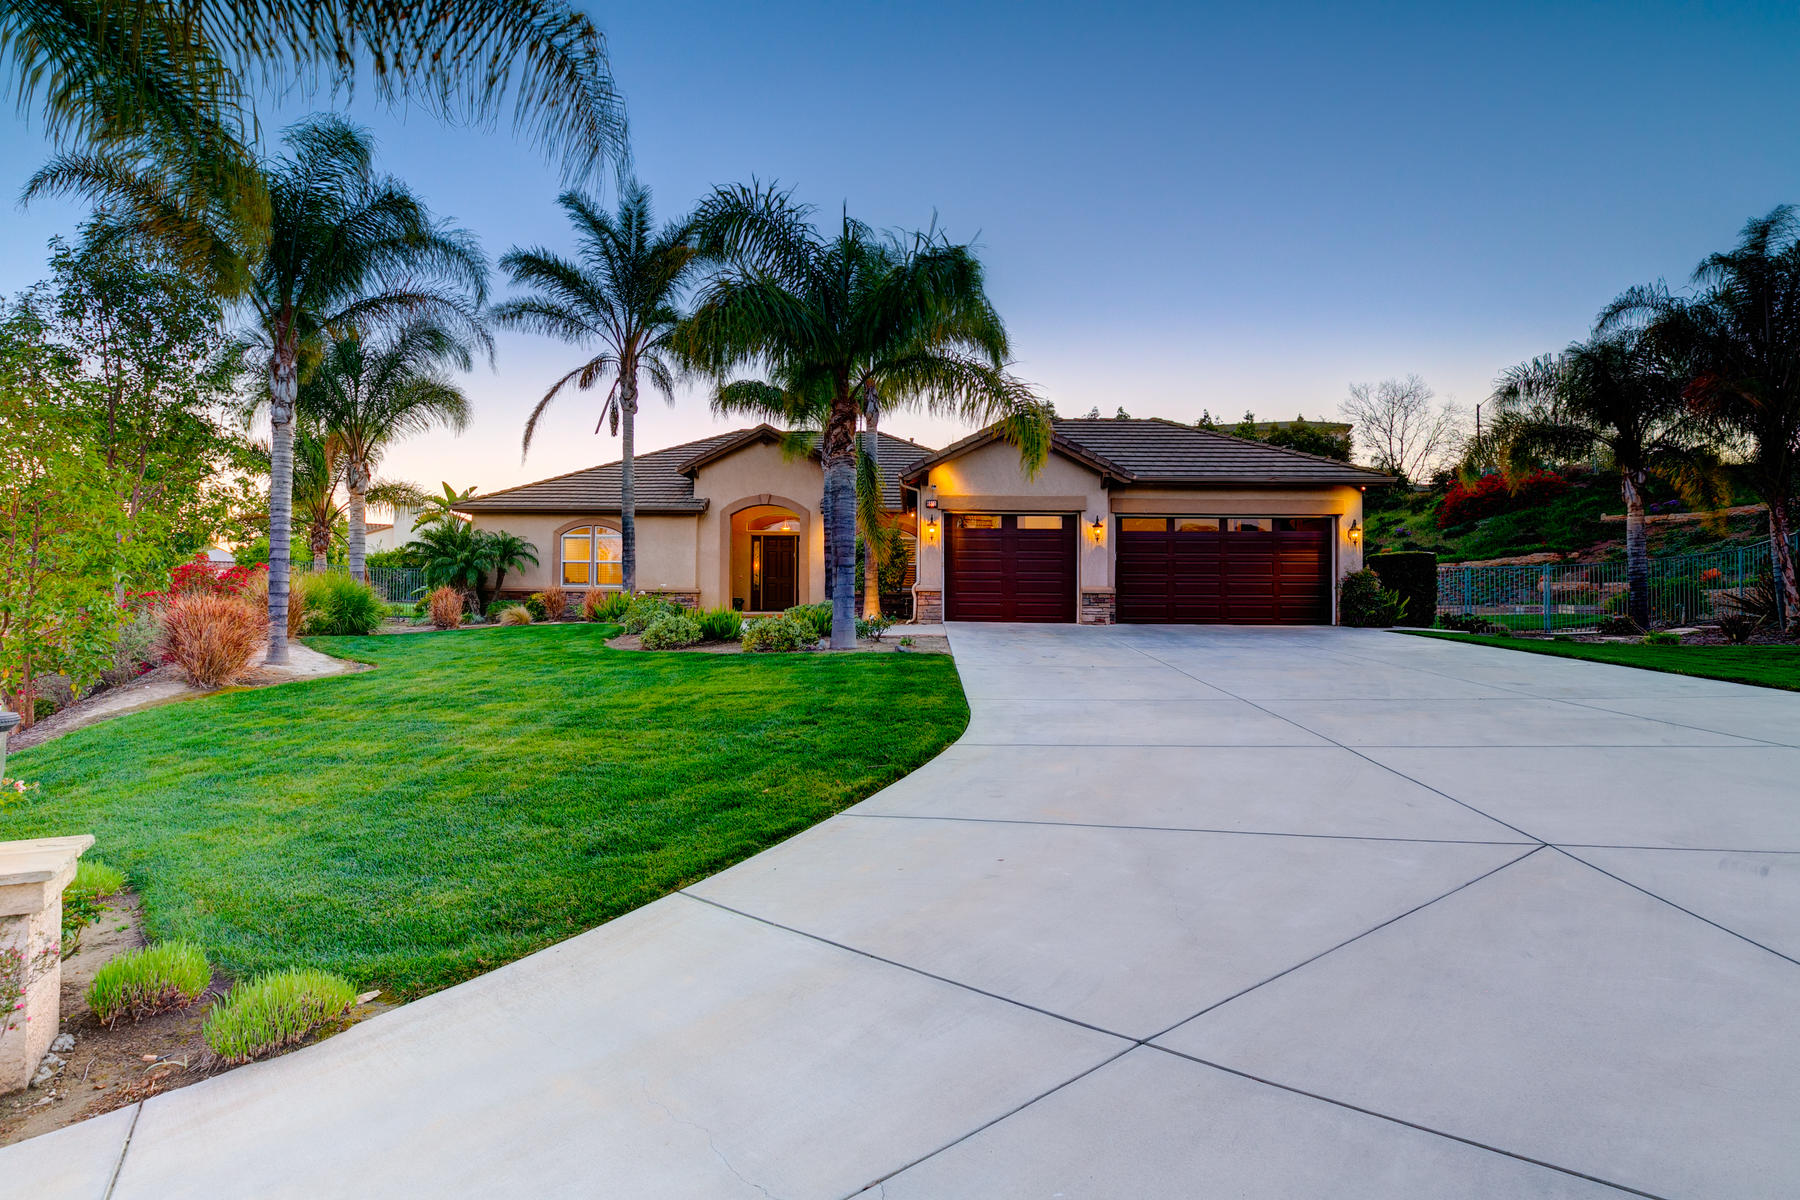 Single Family Homes for Active at Bella Vista Estate 6851 Pueblo Vista Camarillo, California 93012 United States